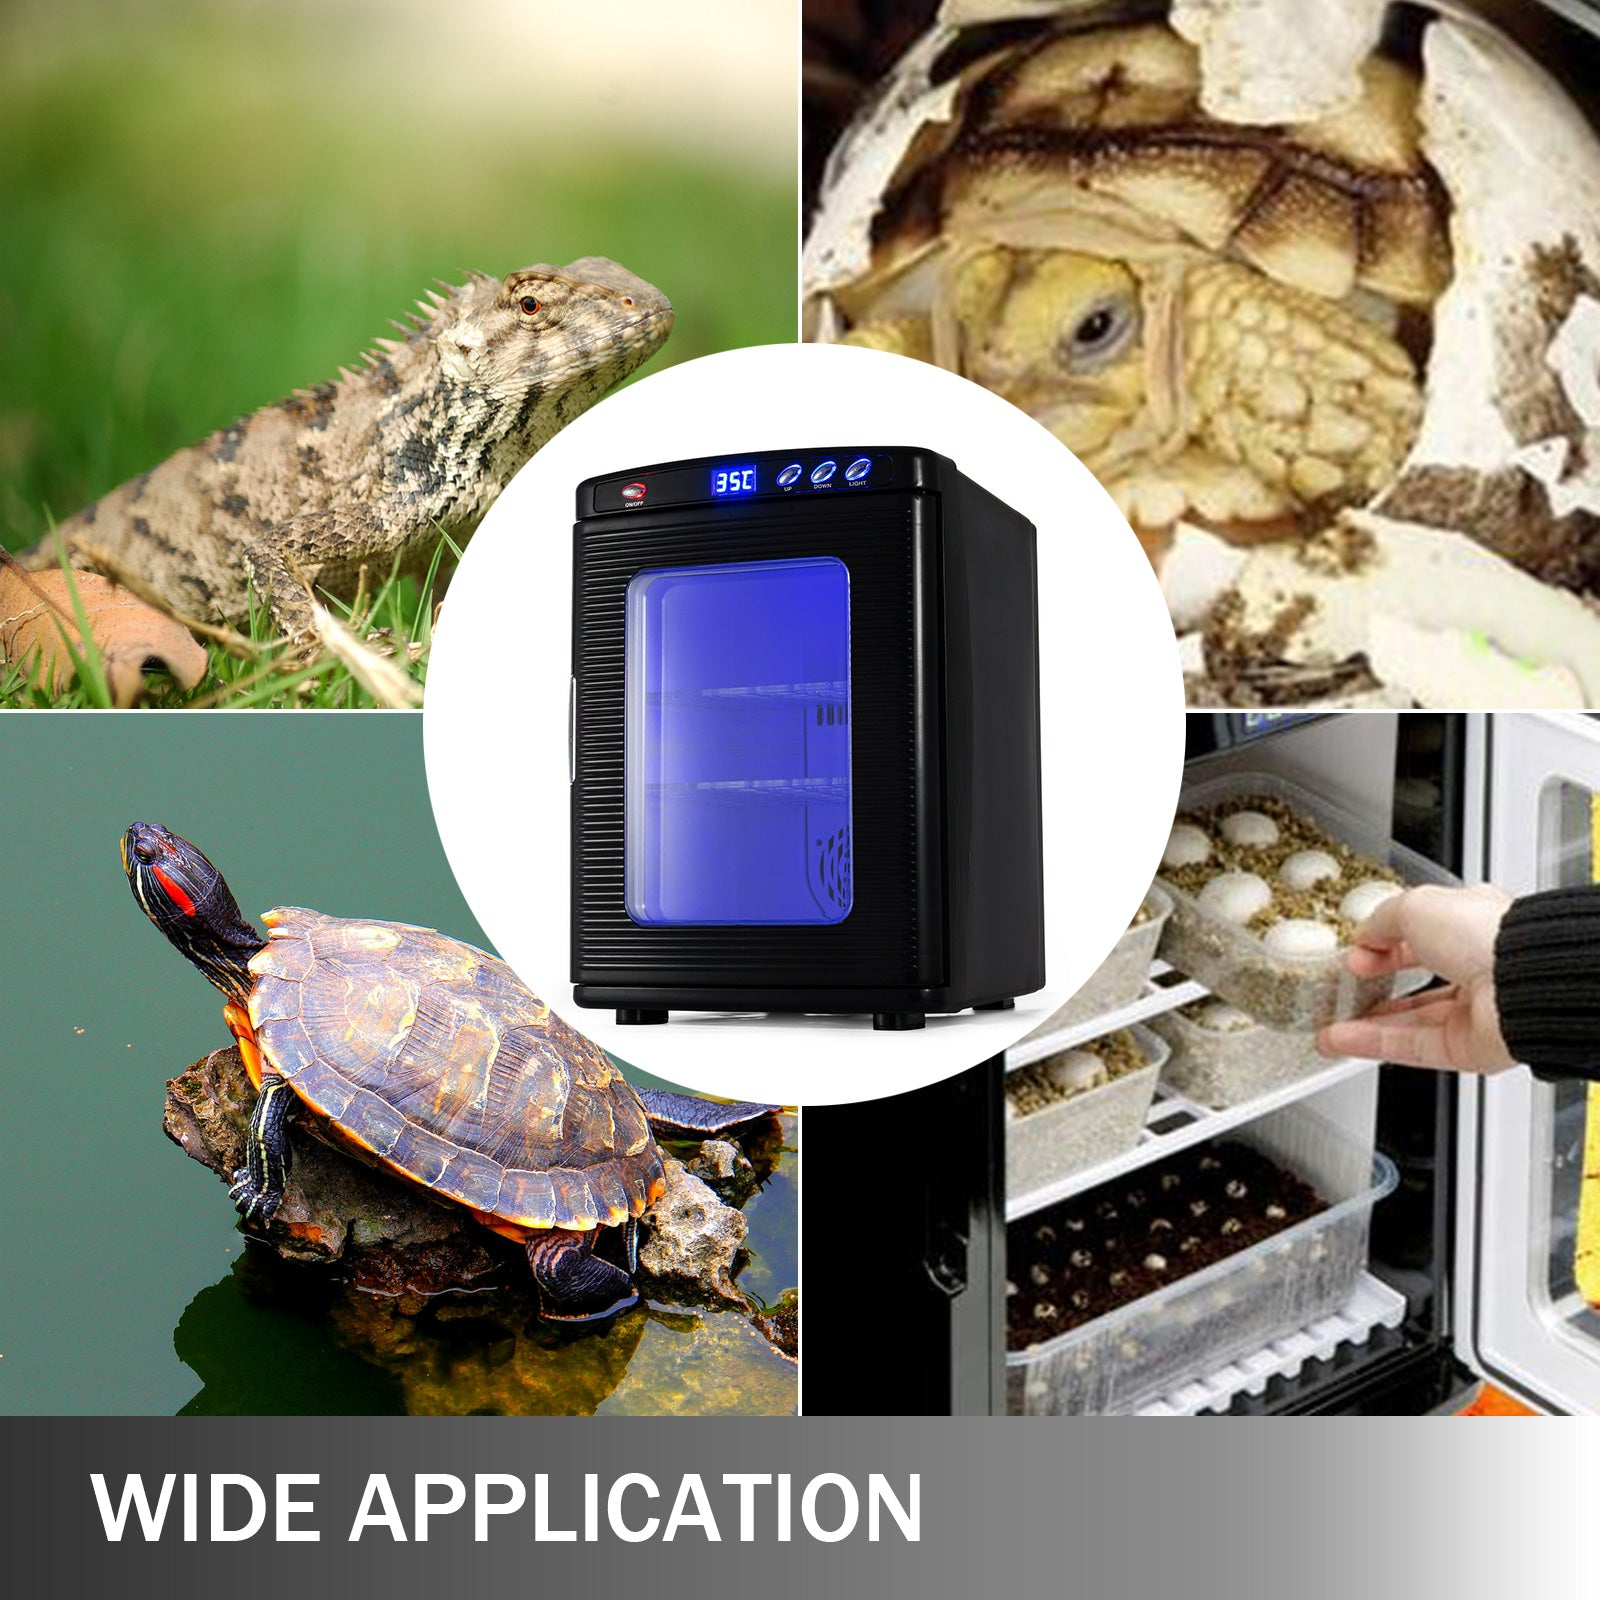 Digital Egg Incubator For Hatching Chicken Duck Reptile Bird Brooder